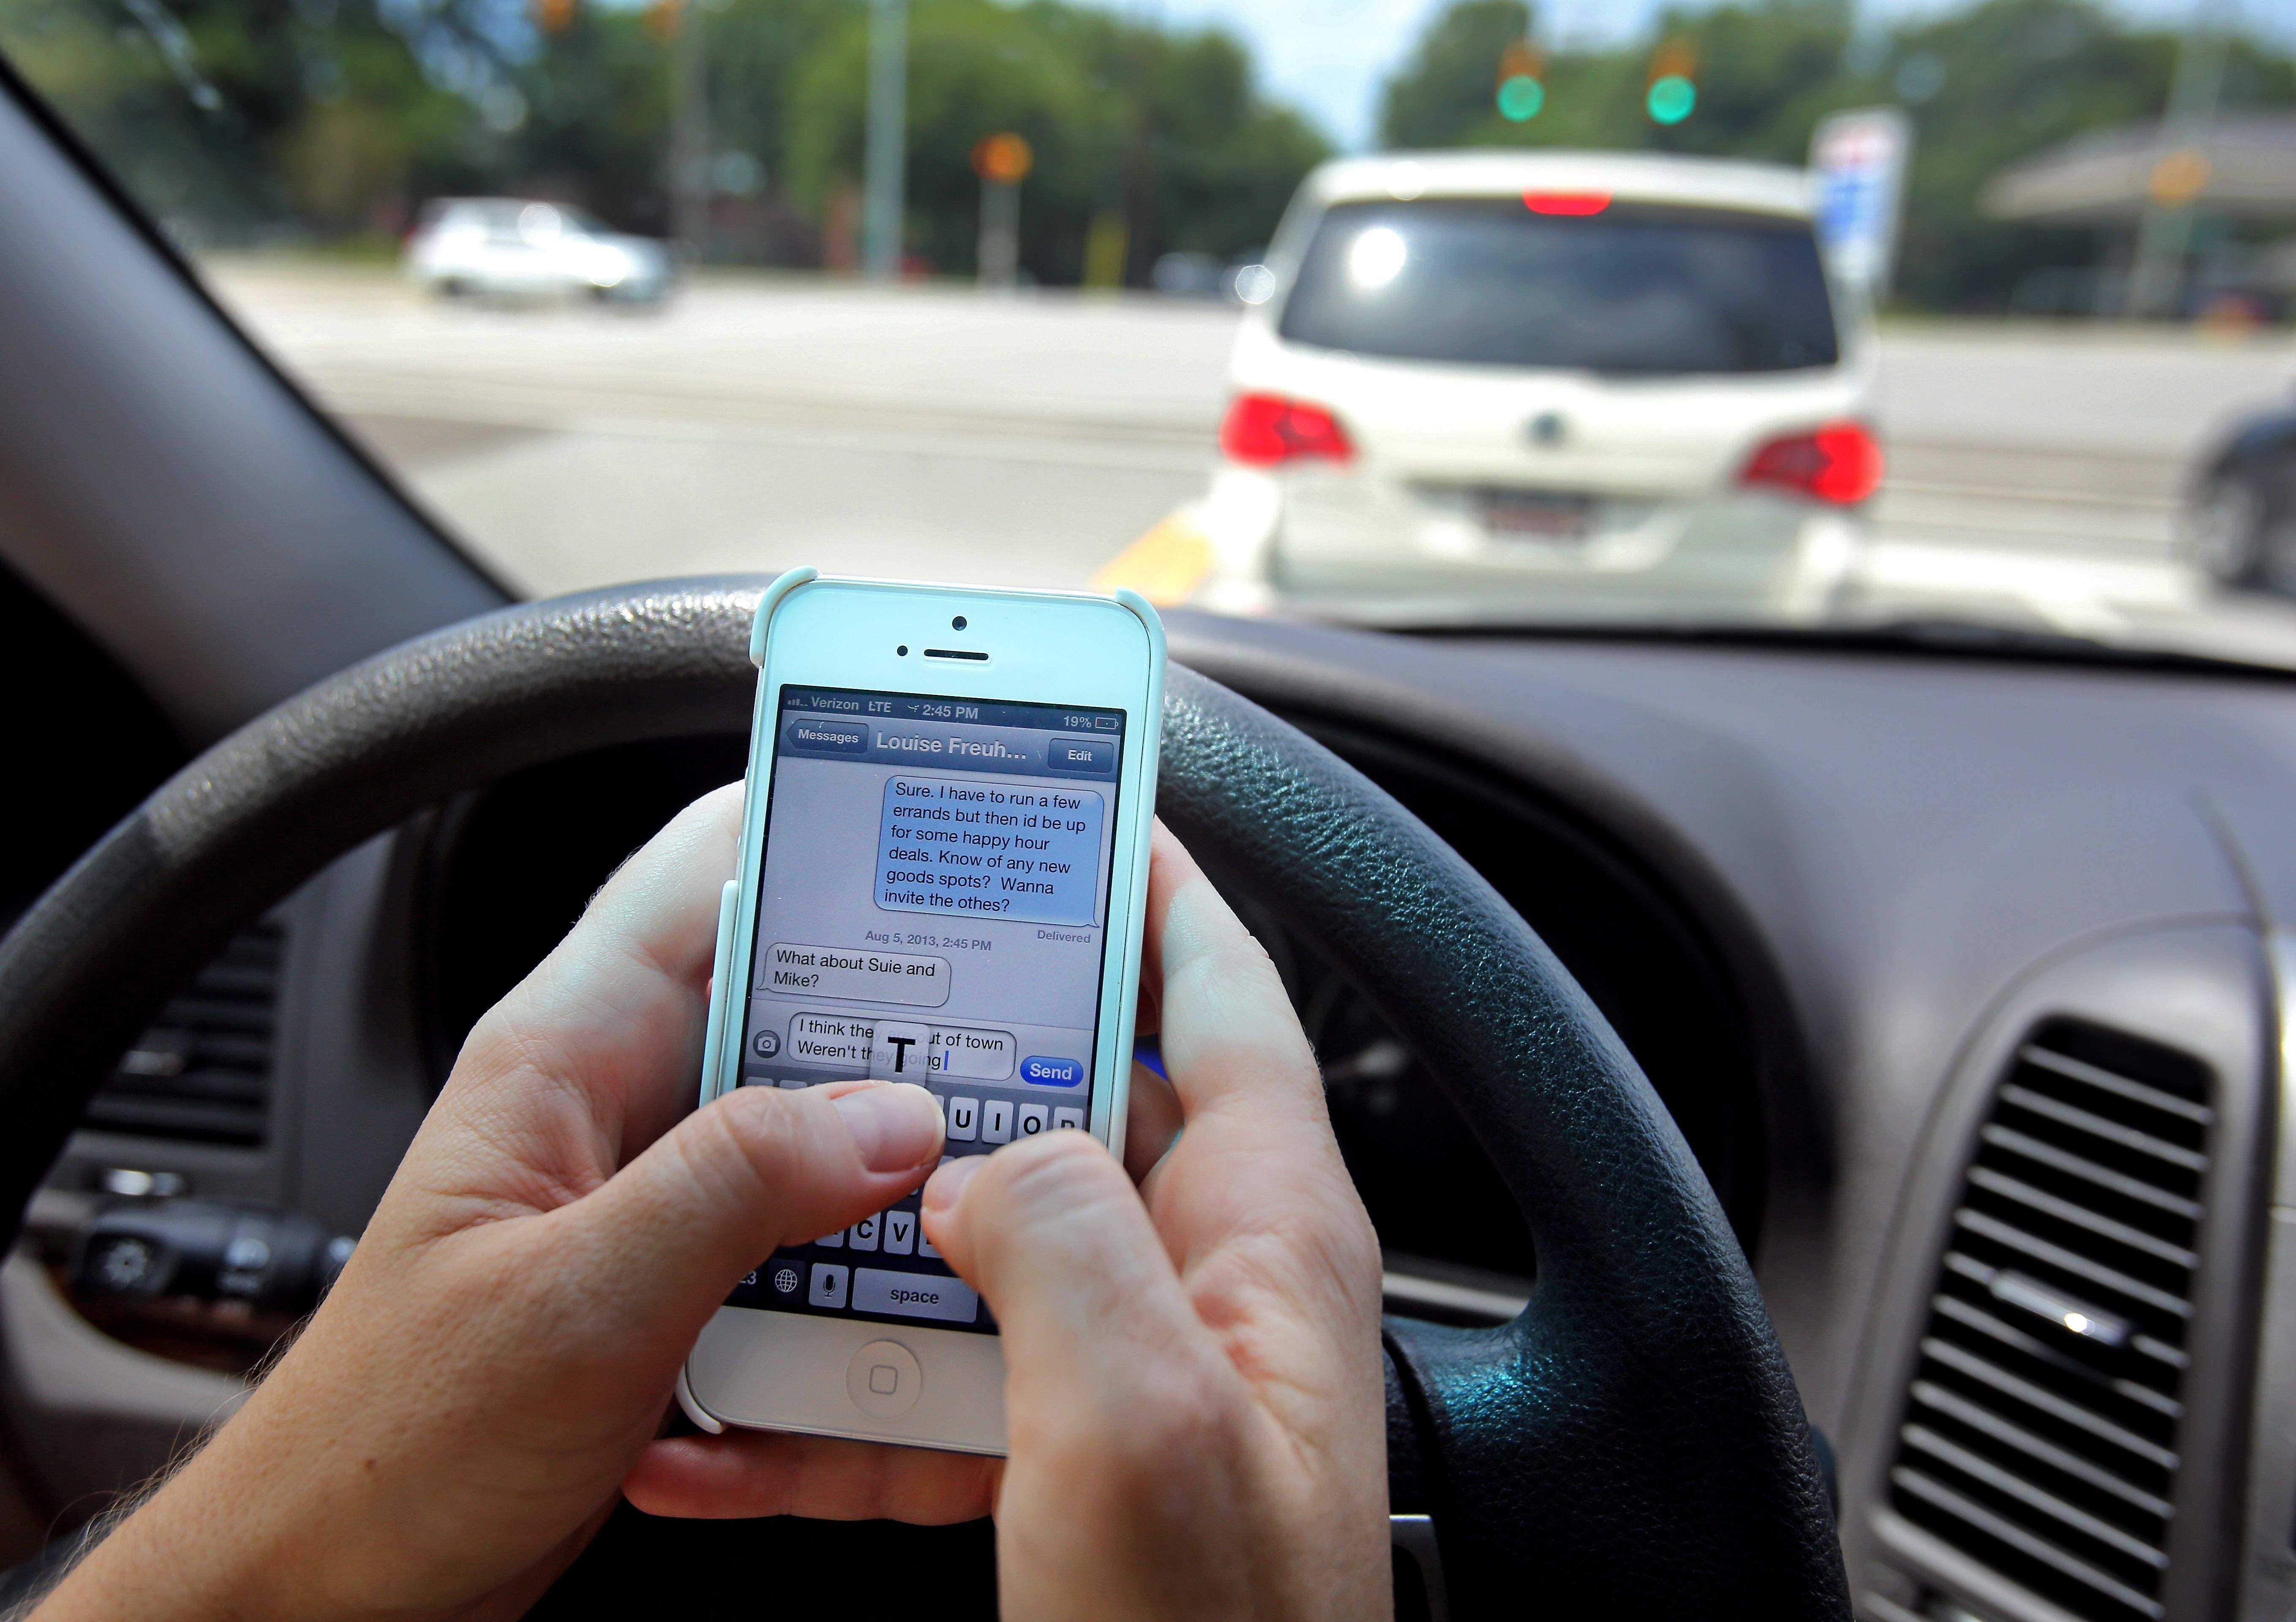 Pennsylvania Law Increases Texting While Driving Penalties